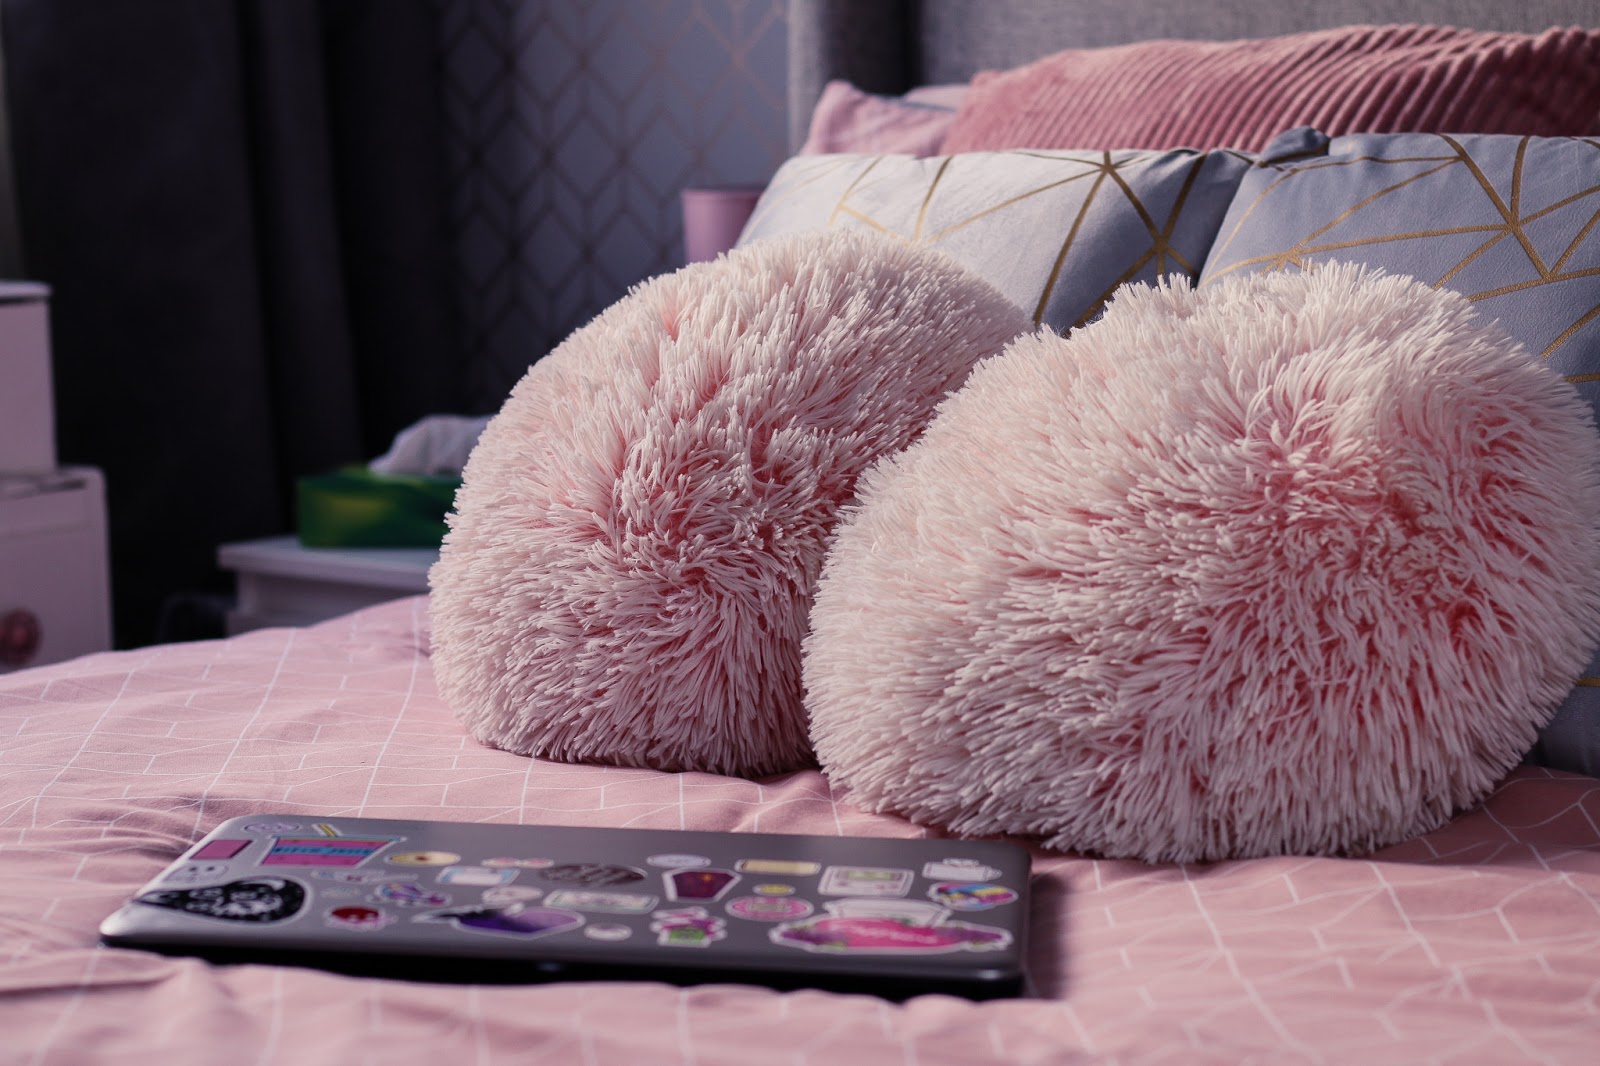 Close up photo of a silver HP laptop on a double bed with pink bedding and two fluffy pink pillows